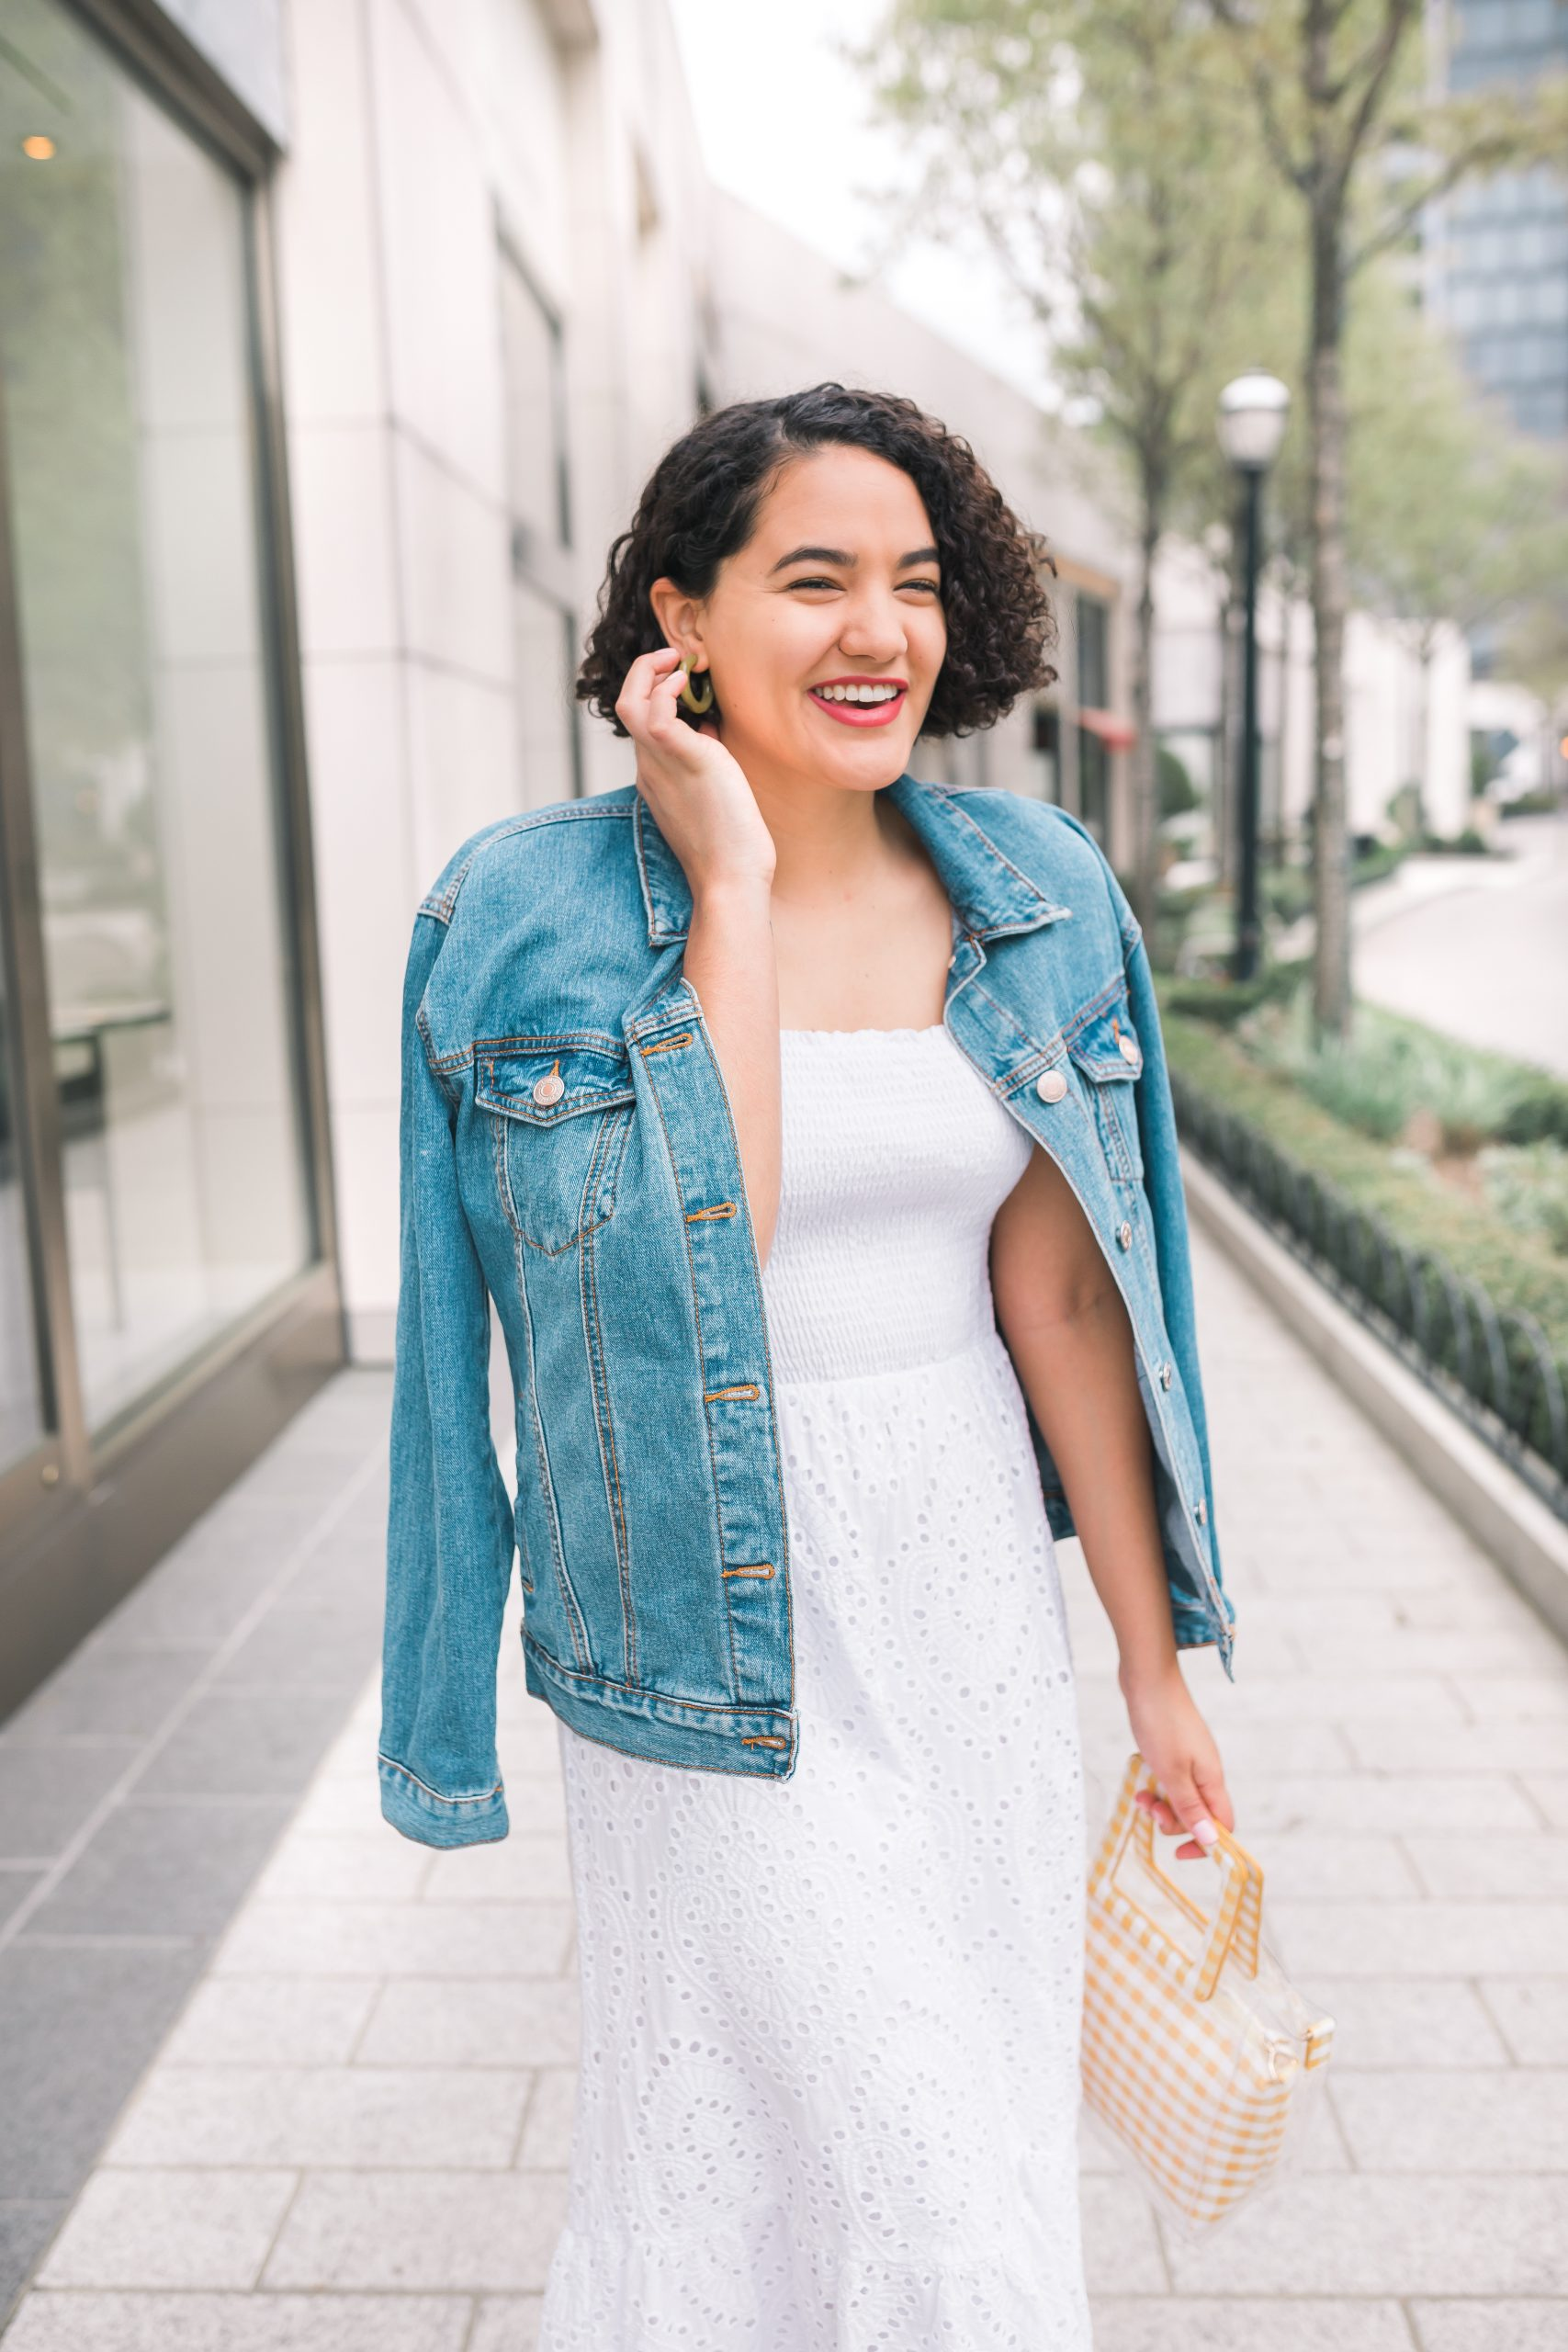 girl wearing a white eyelet midi dress a jean jacket and tan sandals close up